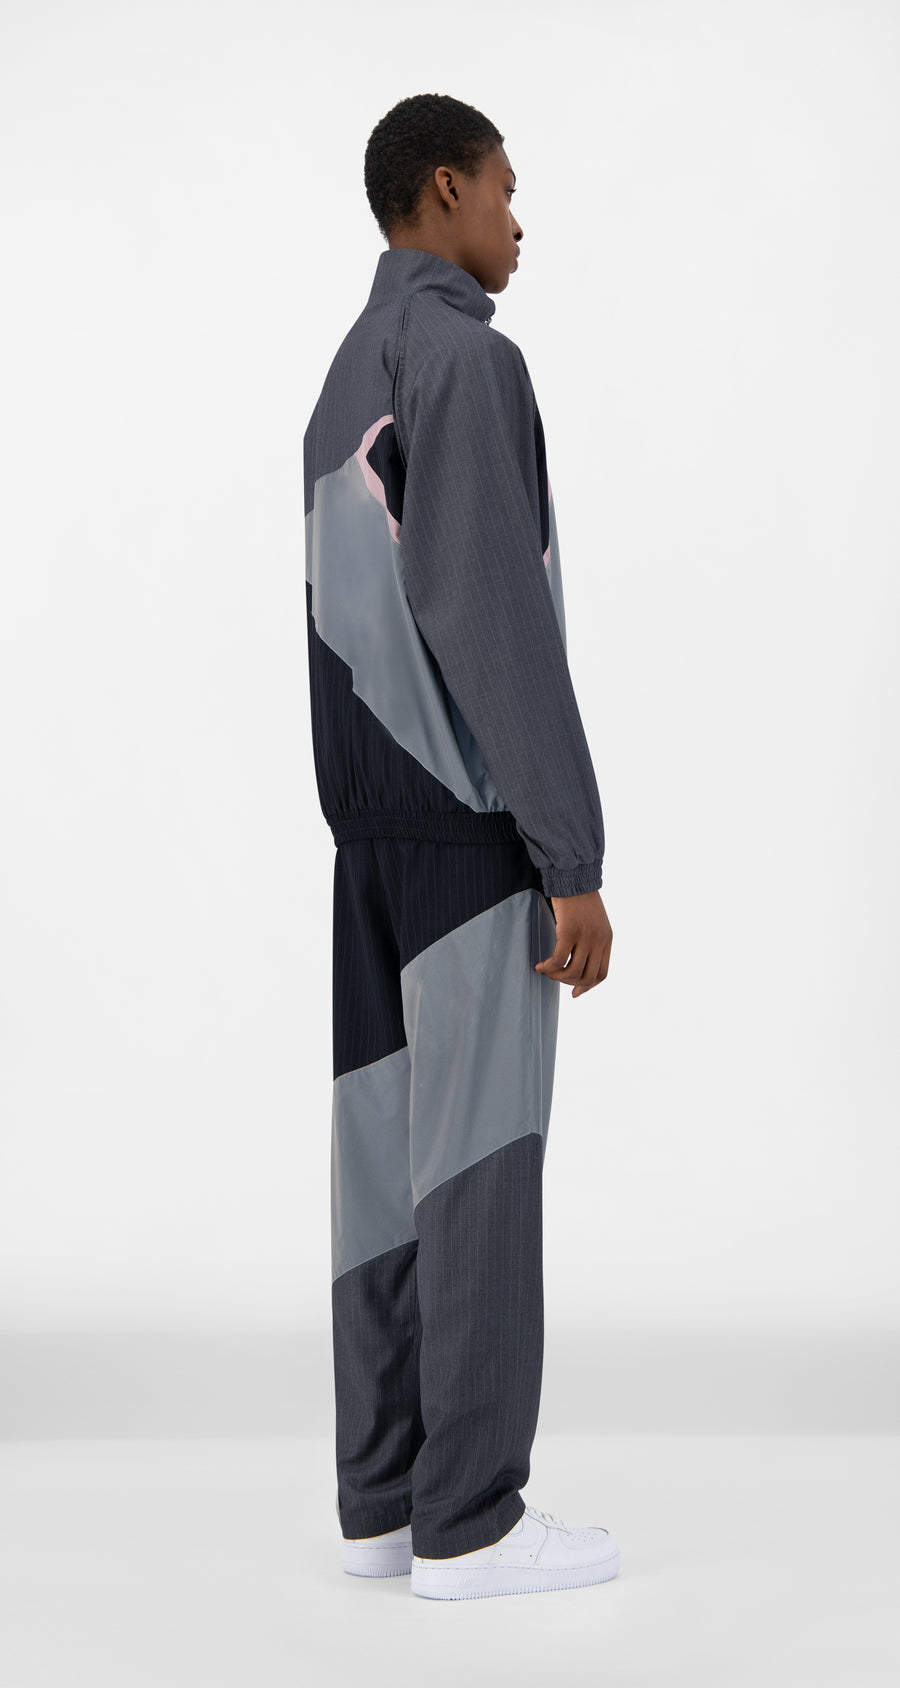 Daily Paper - Reflective Grey Jorie Jacket - Women Rear